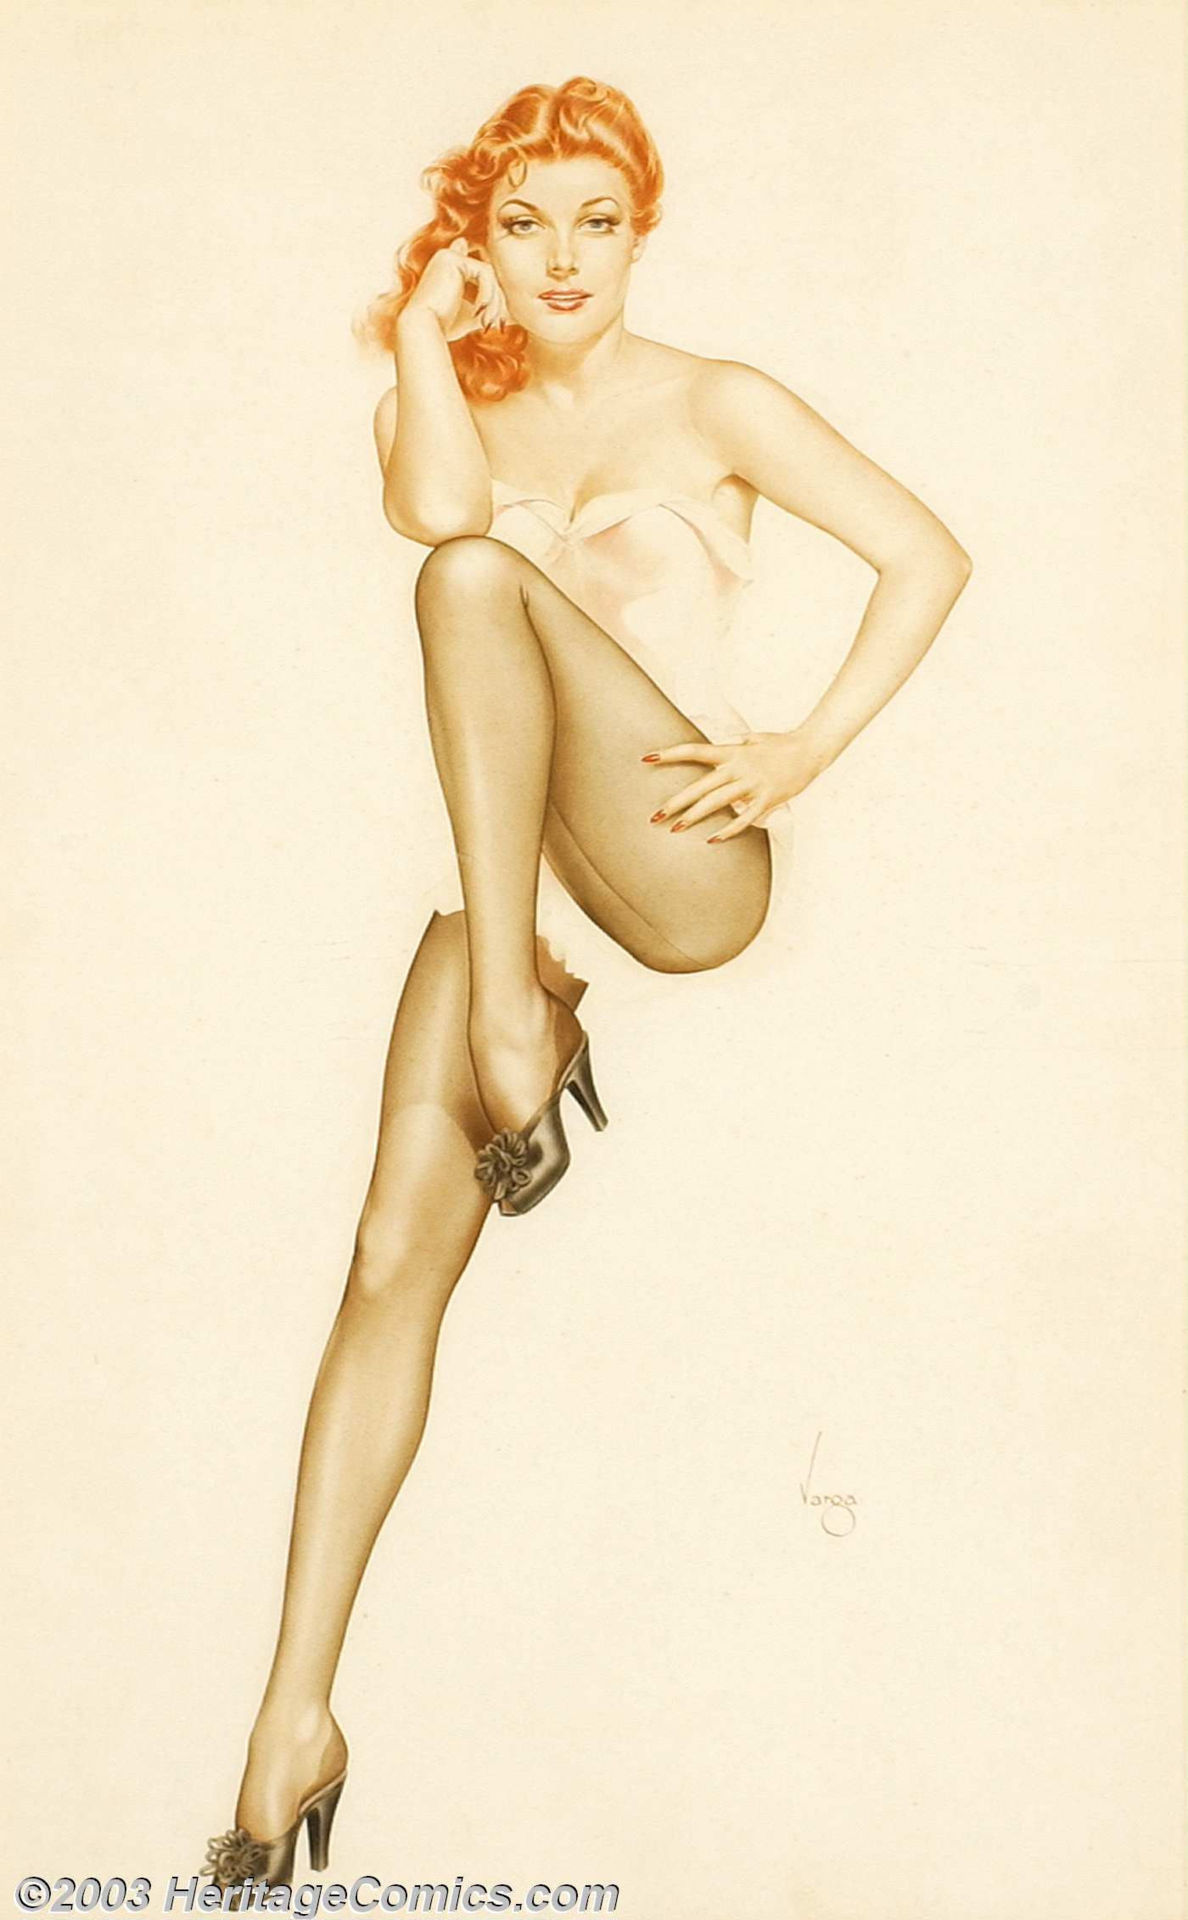 msbehavoyeur:  Red ~ Alberto Vargas (1896-1982) early 1940s original illustration, likely that of Hollywood actress Ann Sheridan.  (c.mid-1940s). via